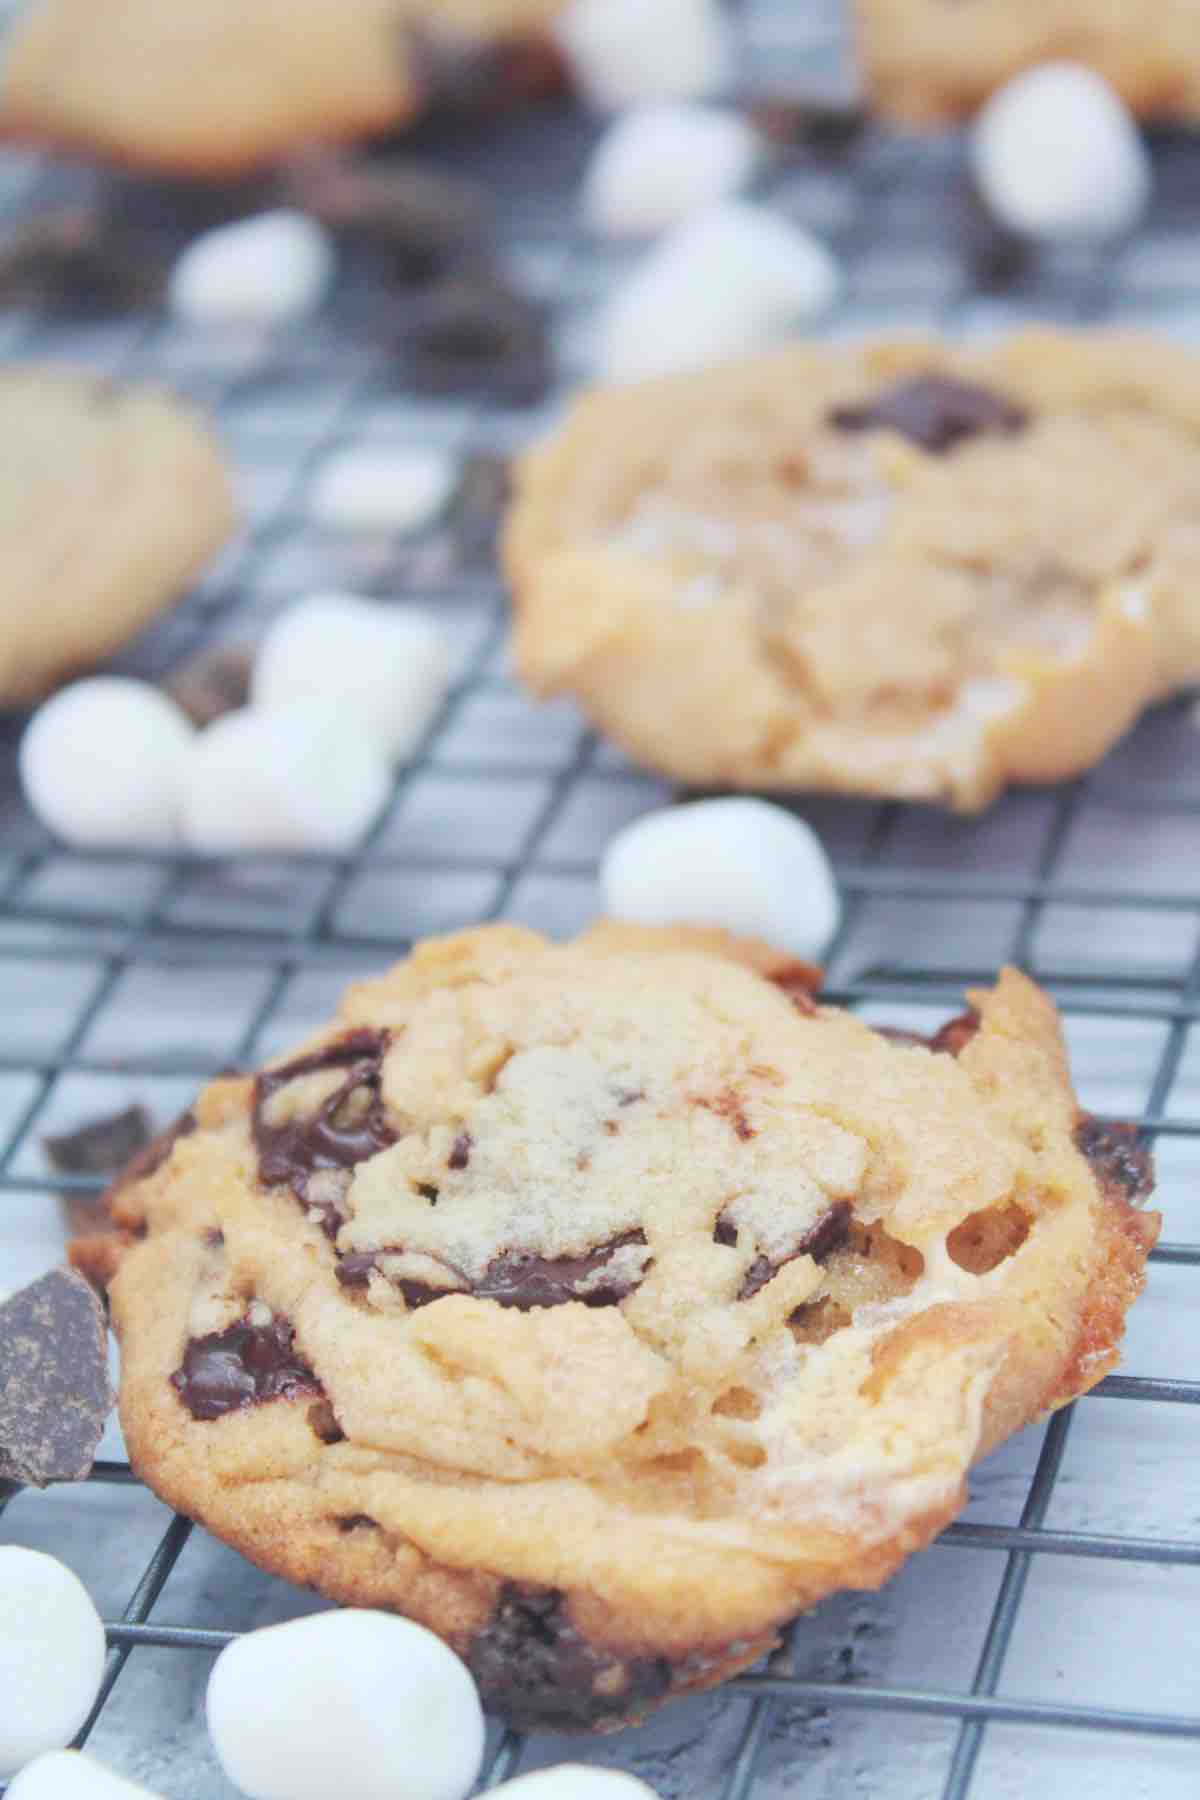 Baked Cookies with Peanut Butter, Marshmallows and Chocolate Chunks